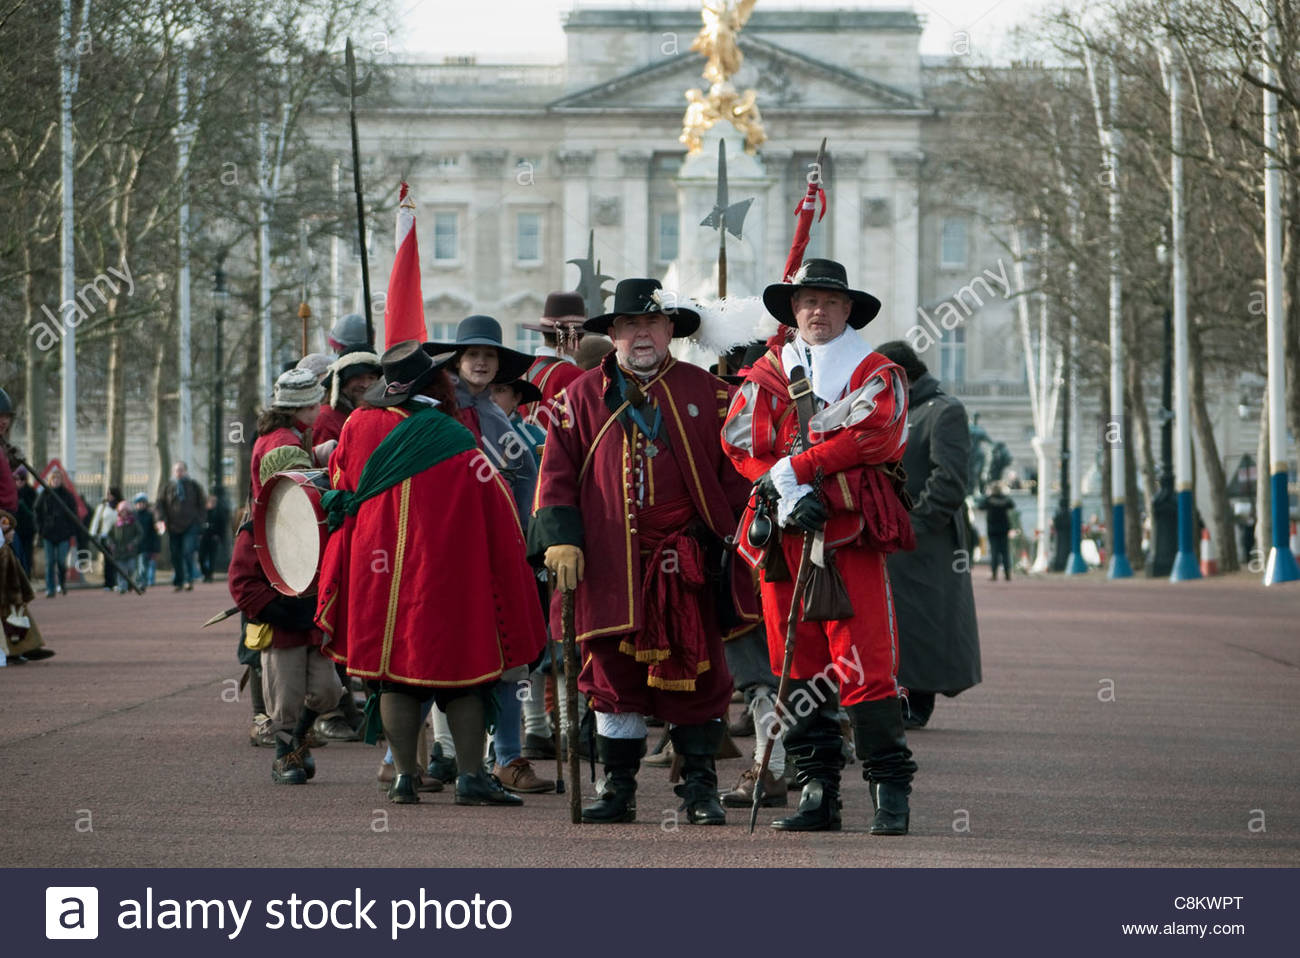 Londoners:The King's Army, a reenactment society, parade in London to commemorate the execution of King Charles - Stock Image